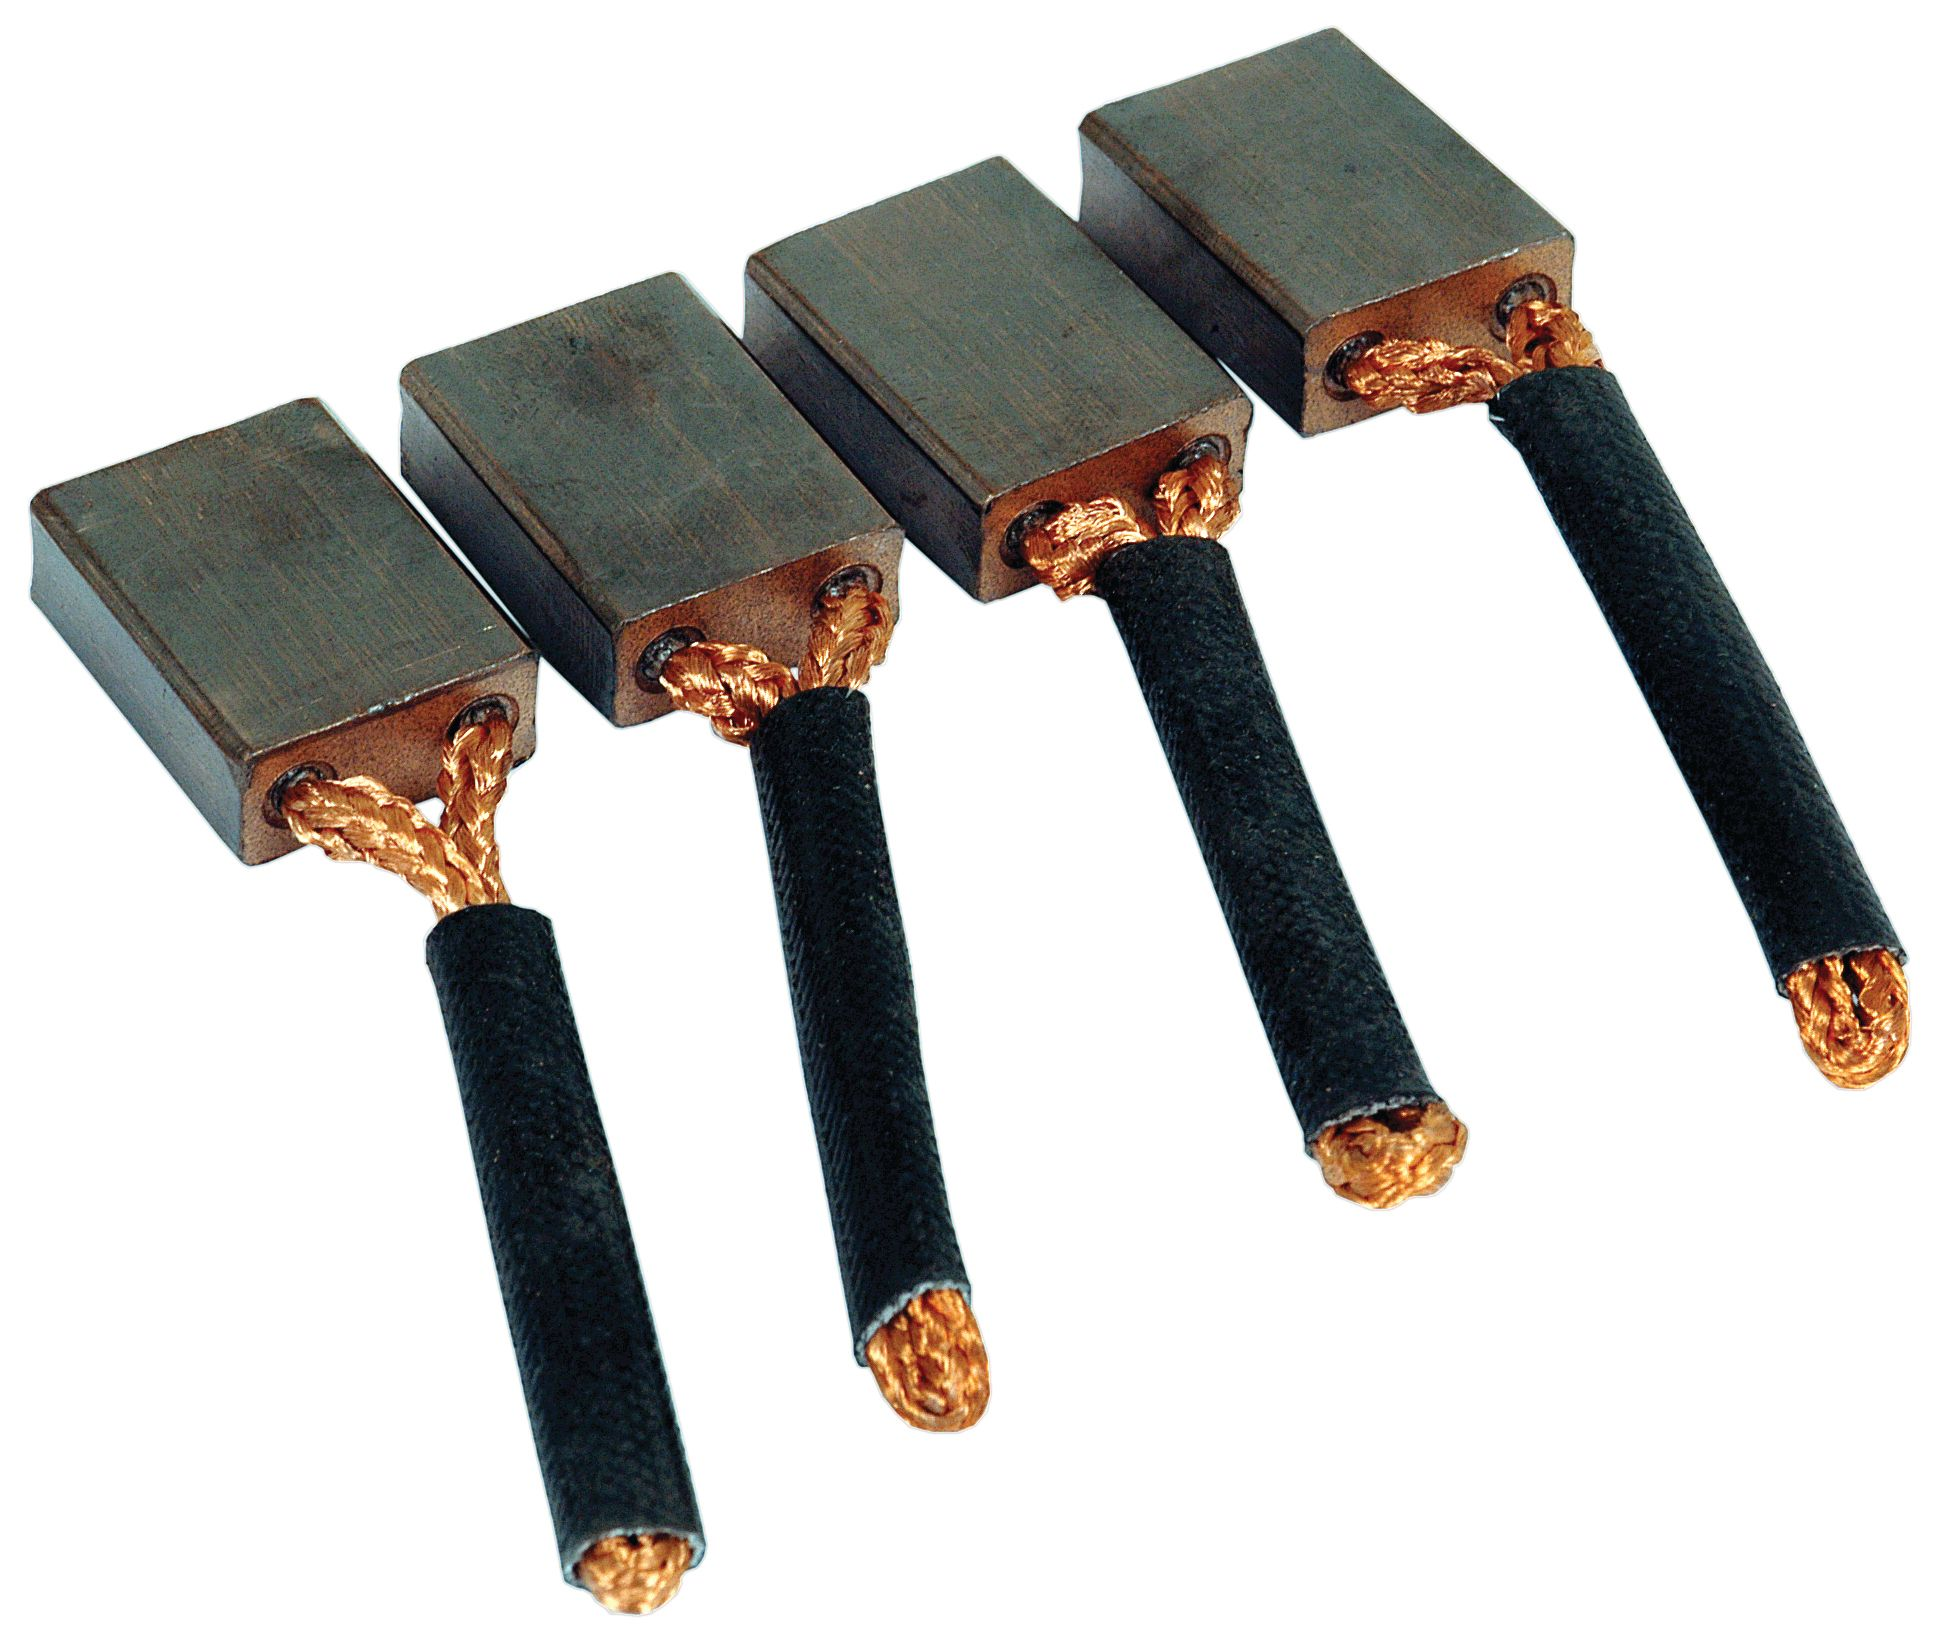 PERKINS BRUSH SET 41154